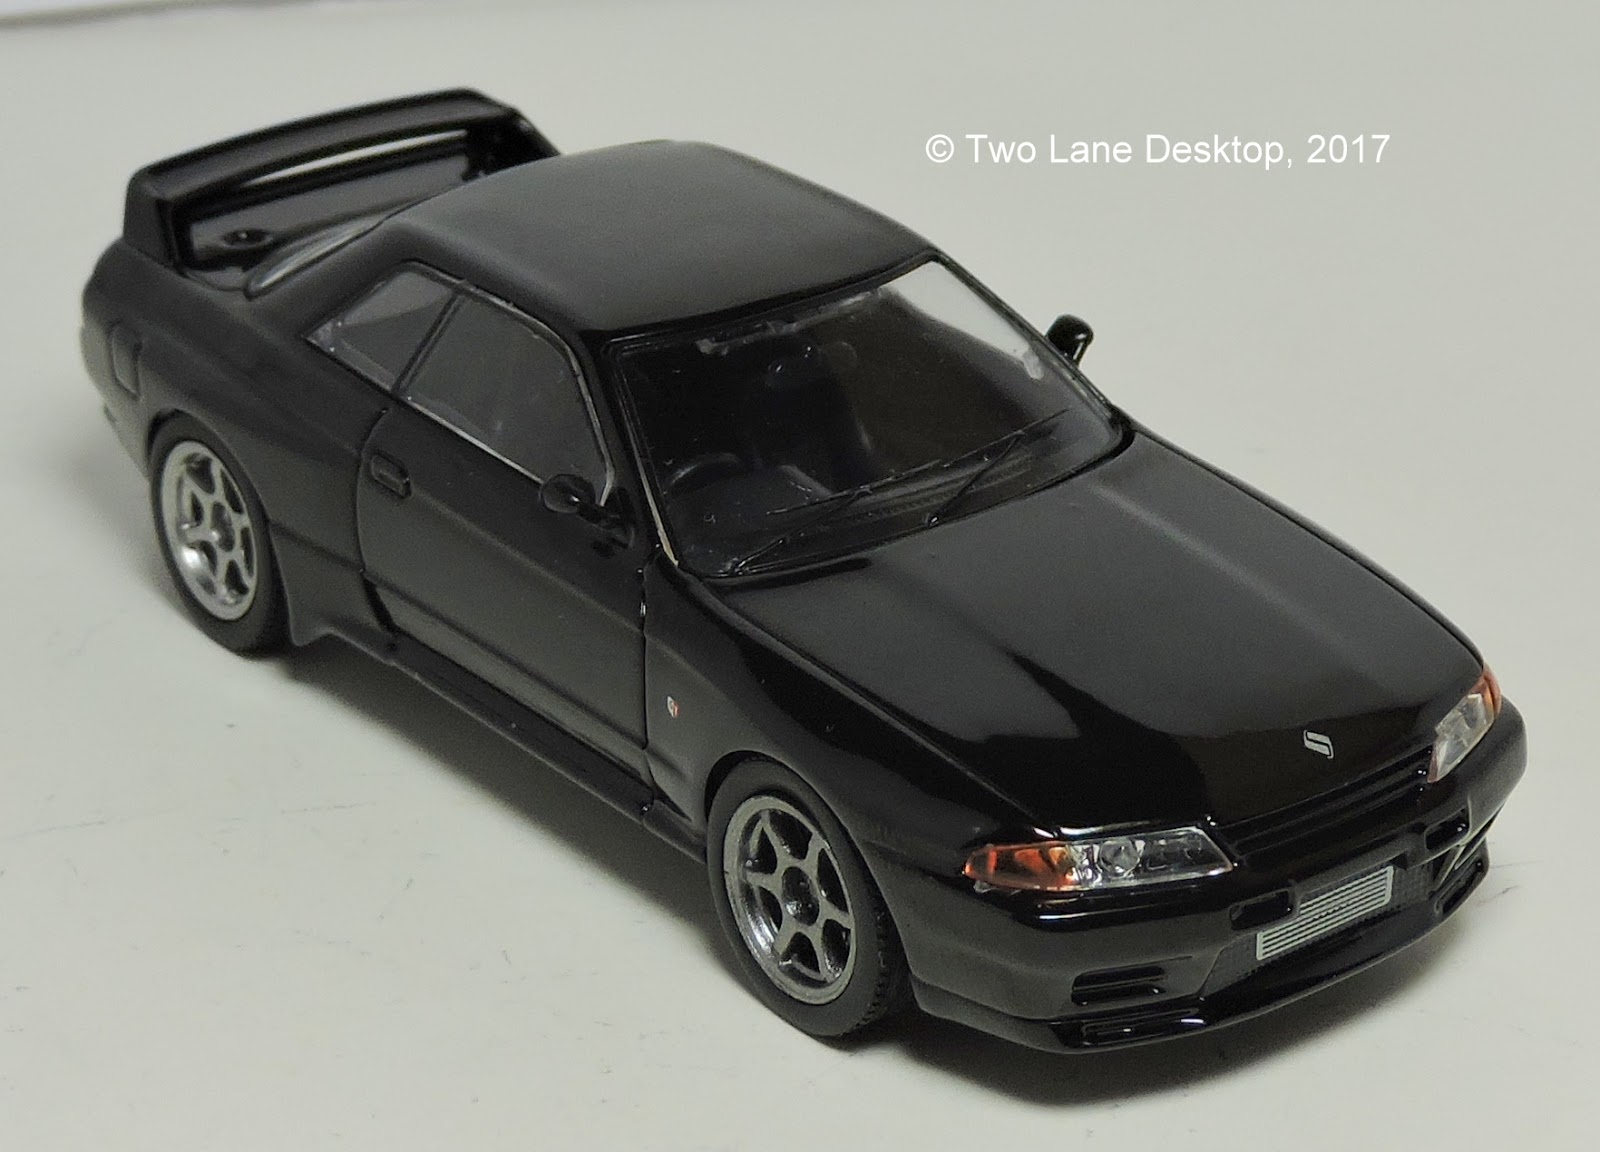 the best of the buck and the entire range of greenlight 1 43 s at the moment is this 1989 skyline gt r r32 from the fast and furious movie franchise